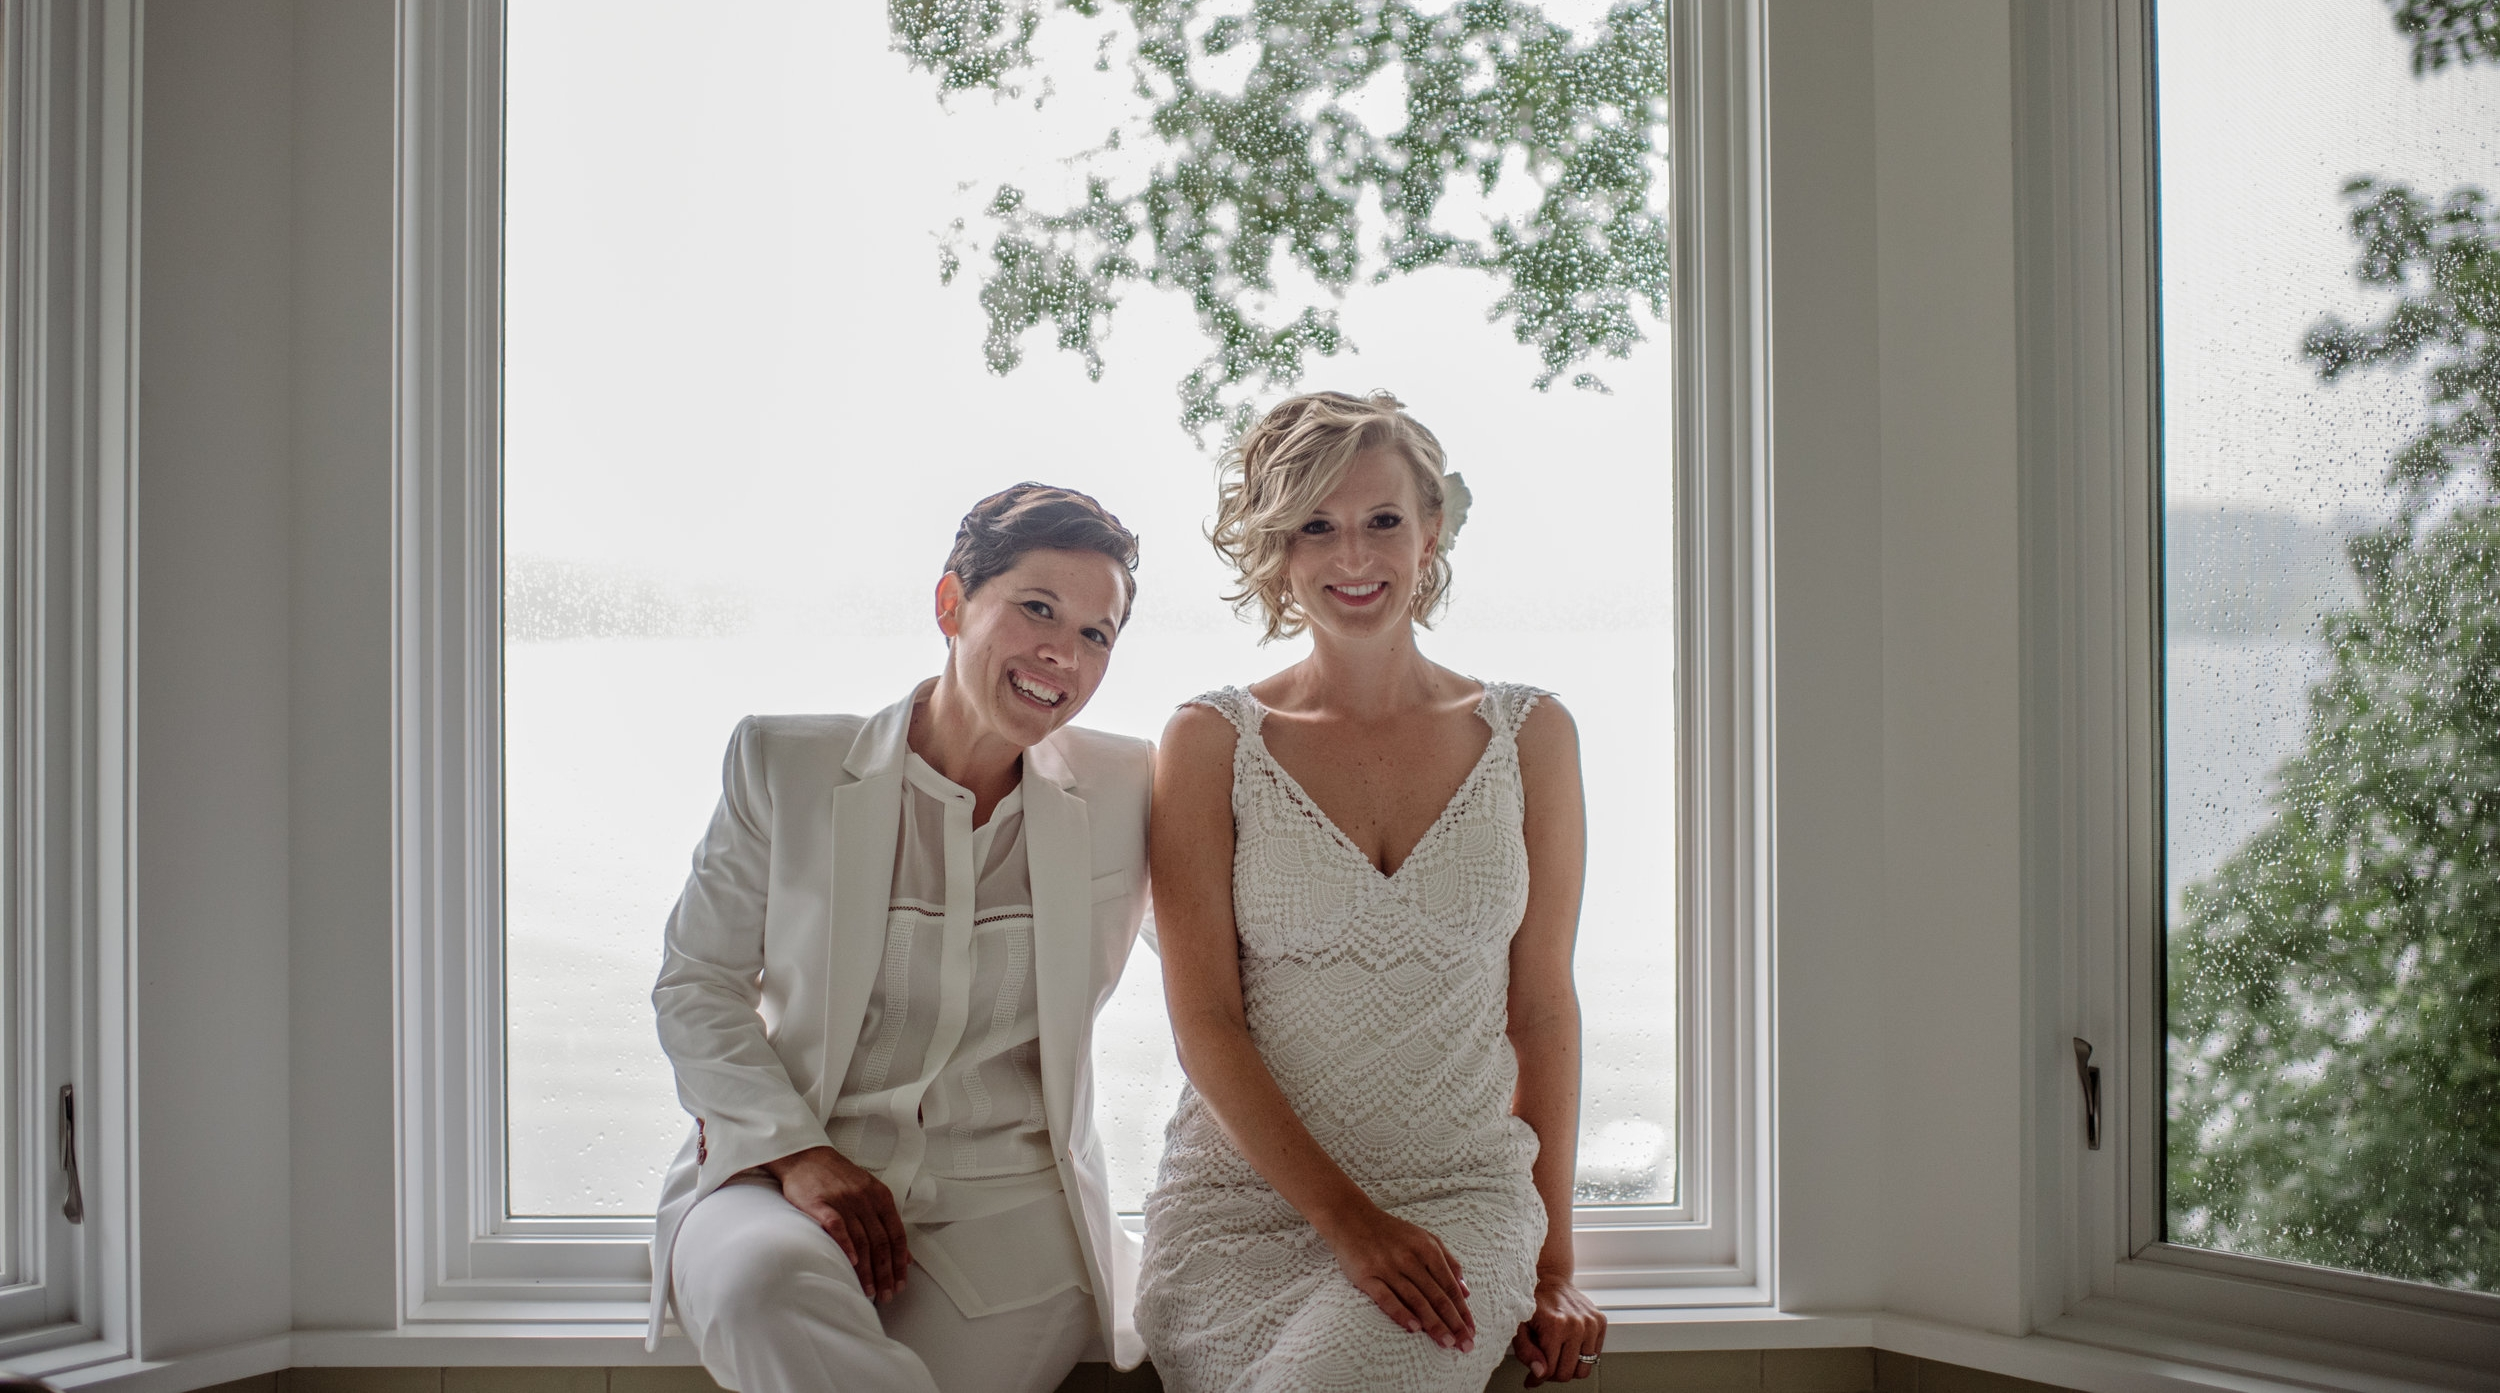 long lake minnesota same-sex wedding photos - Sincerely Pete - Washington DC & Destination Wedding Planner